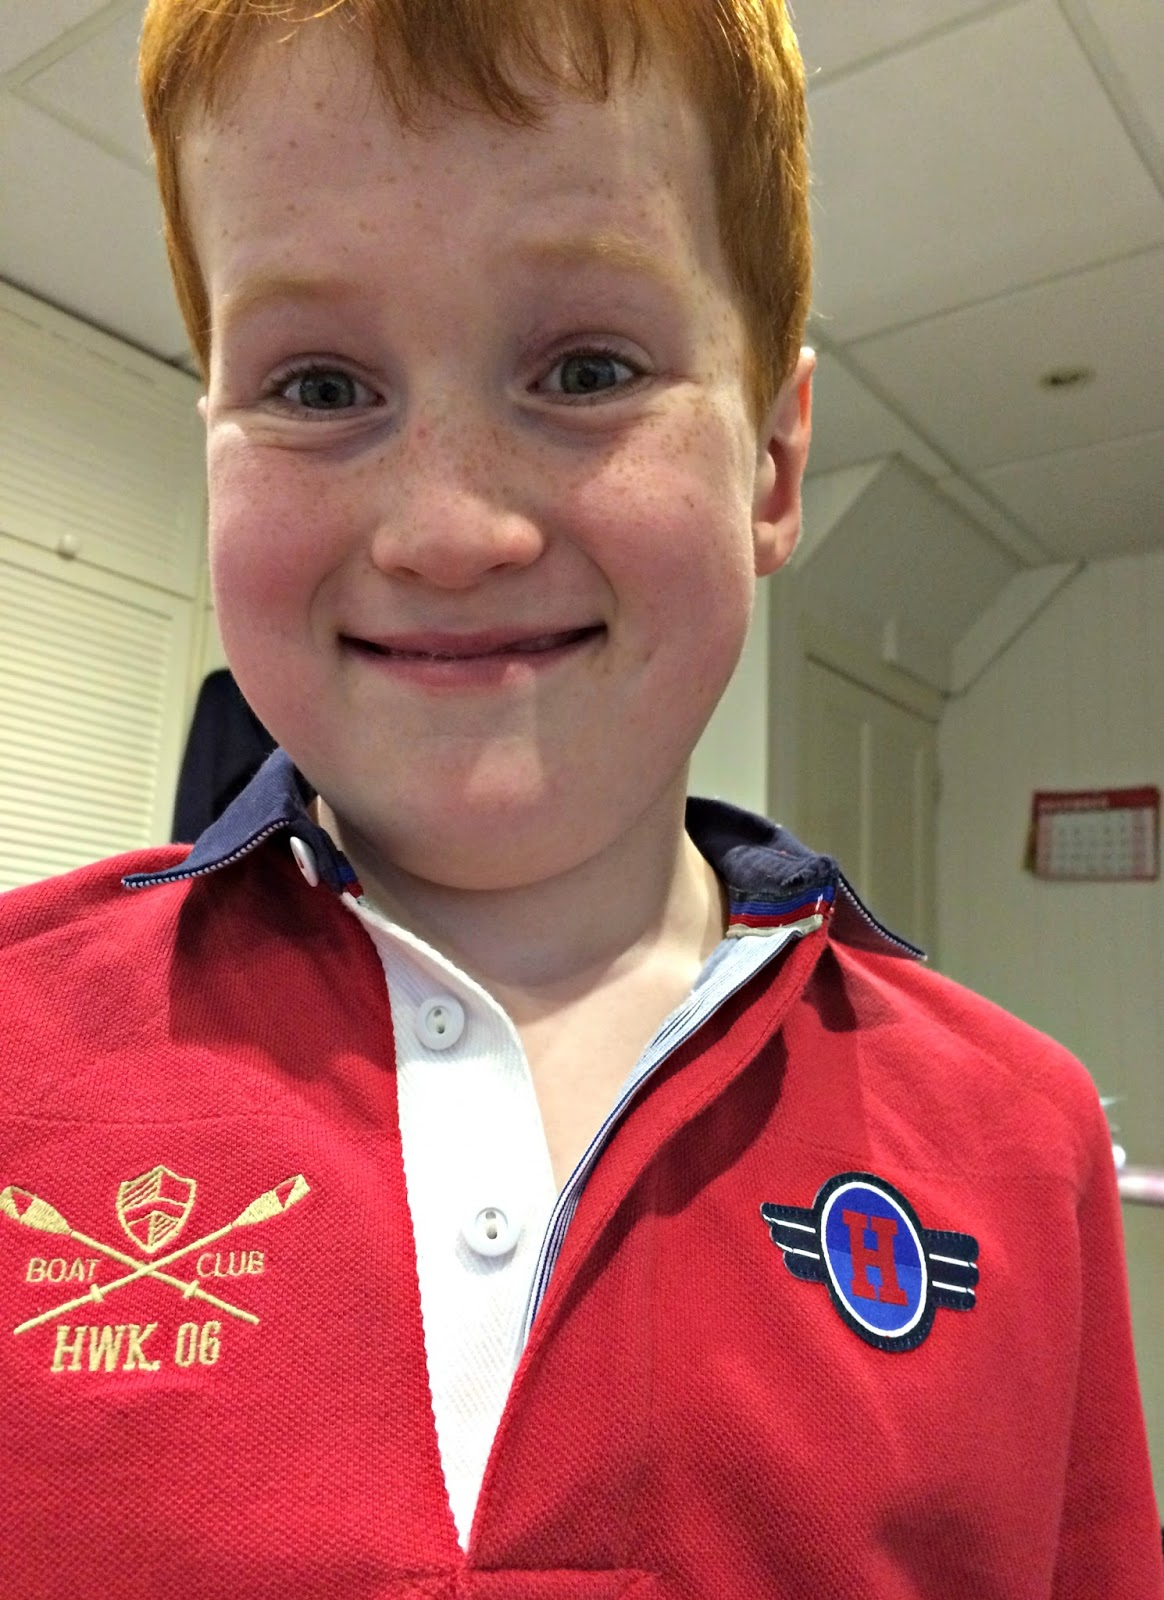 Ieuan wearing Howick Junior Quilted Pique Polo